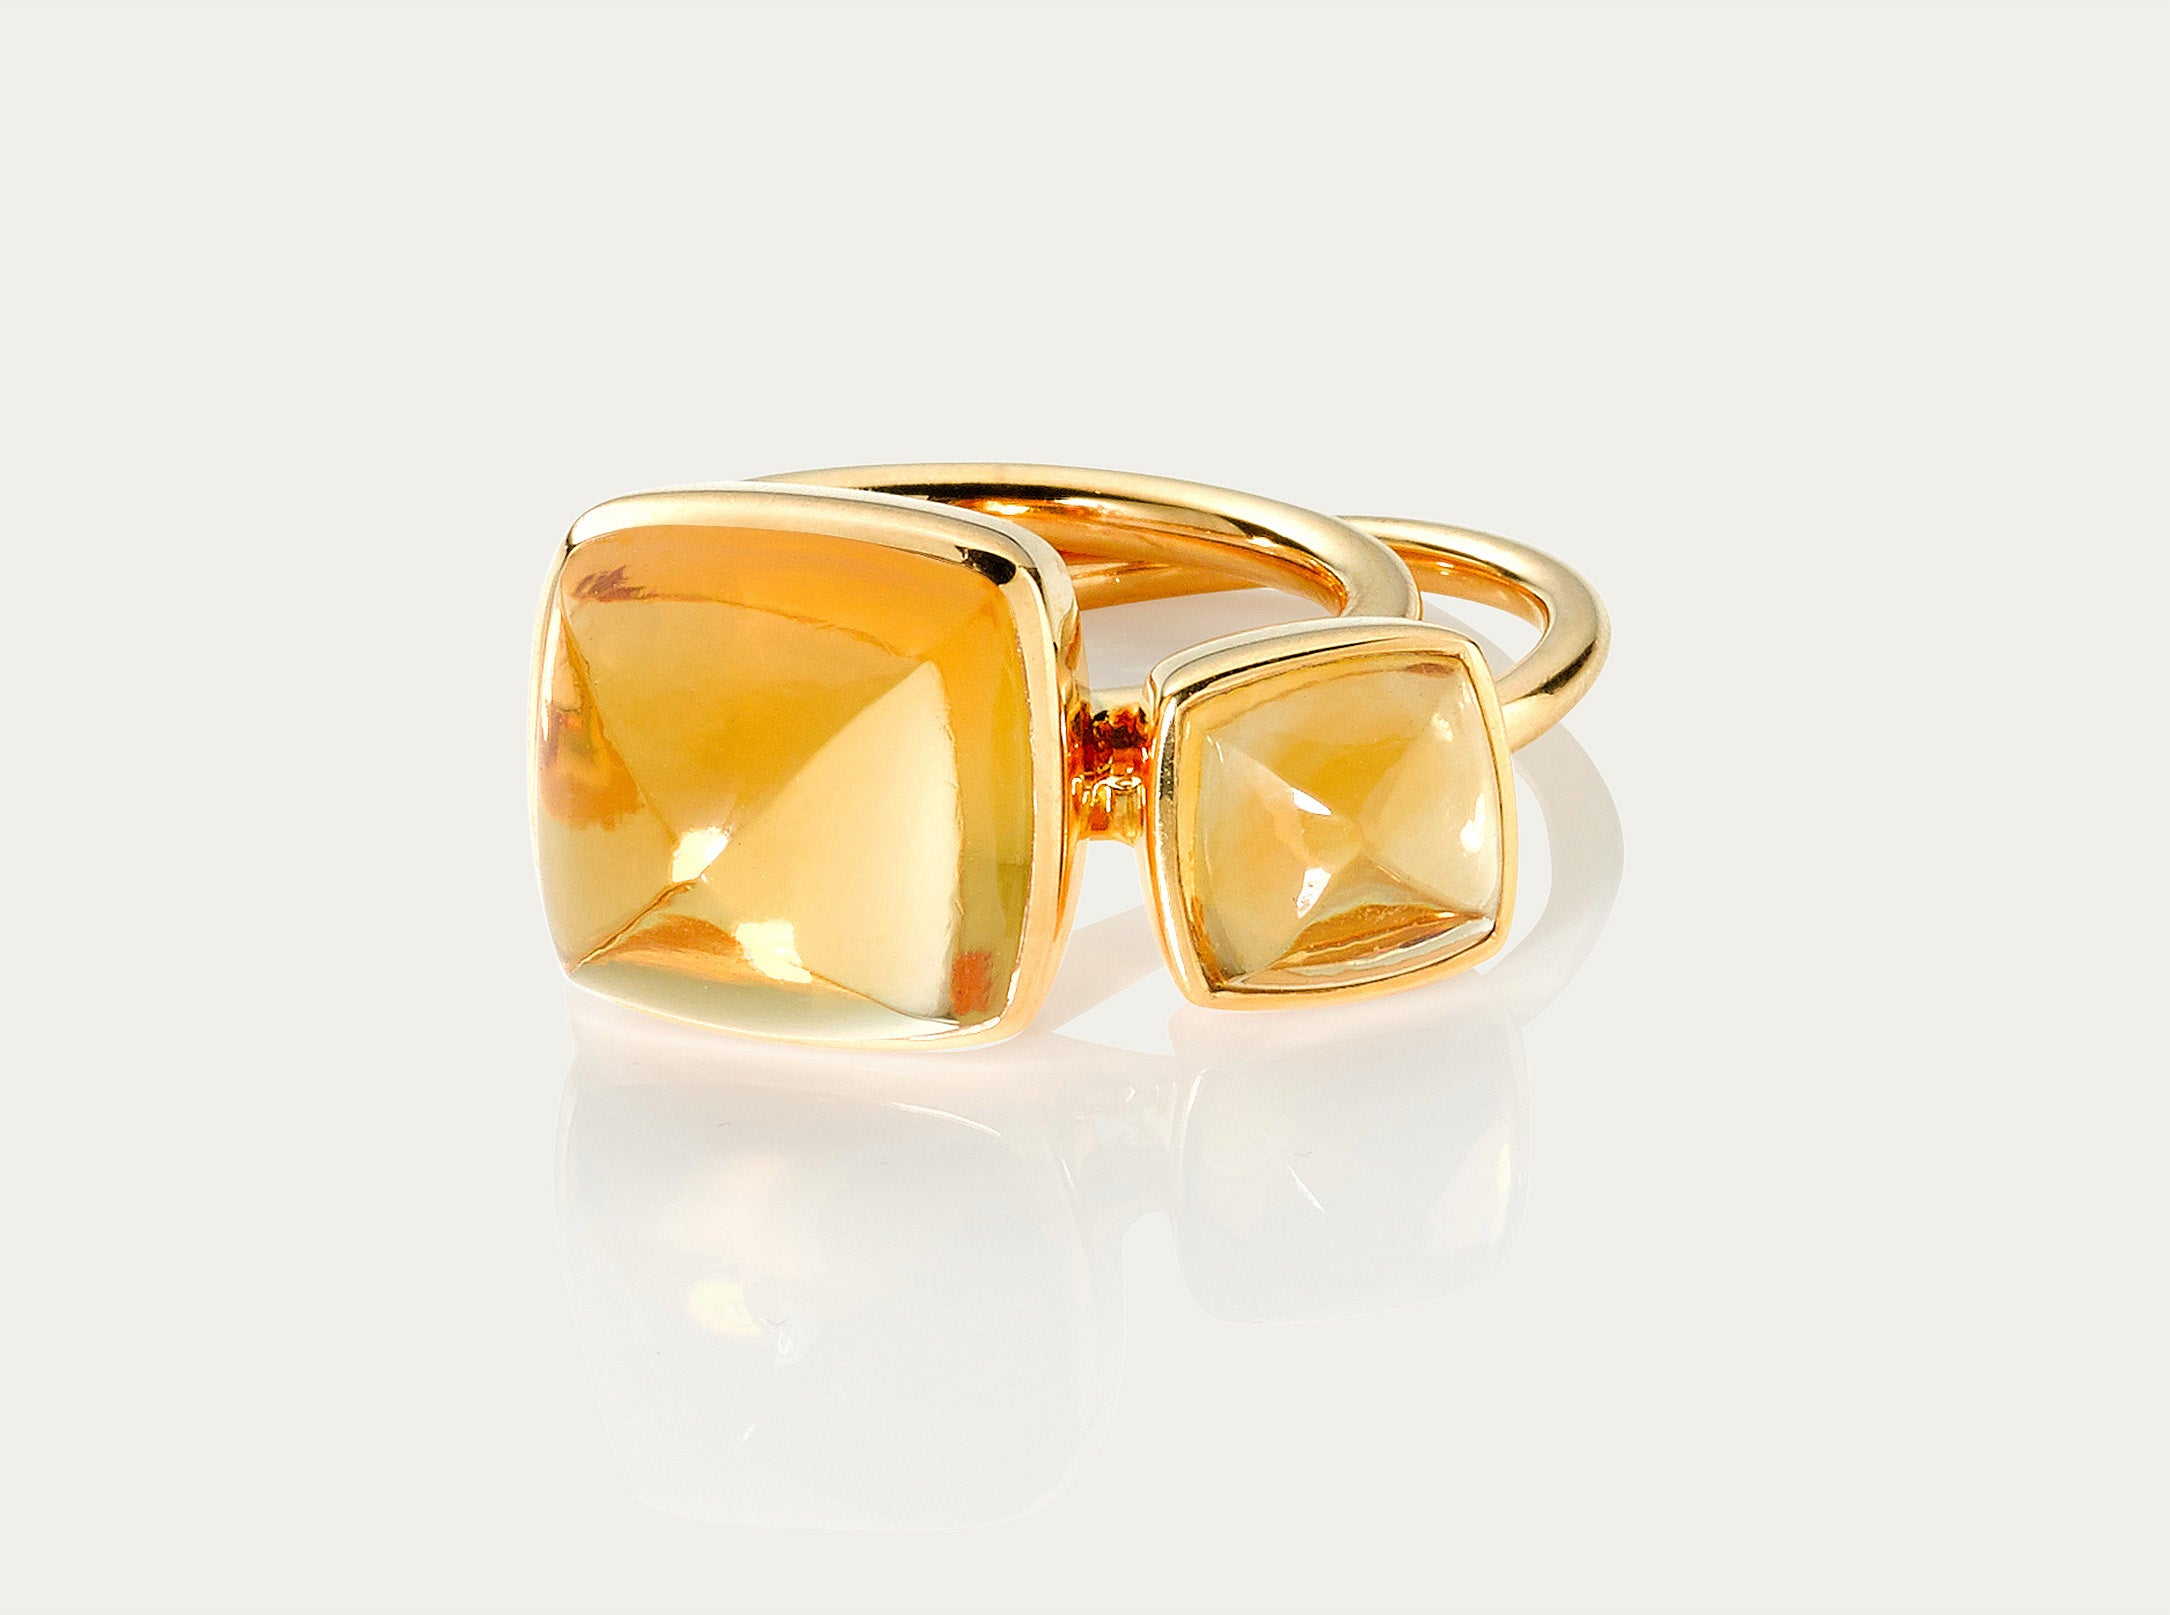 SUGARLOAF Cut Ring - CITRINE, 18K Gold